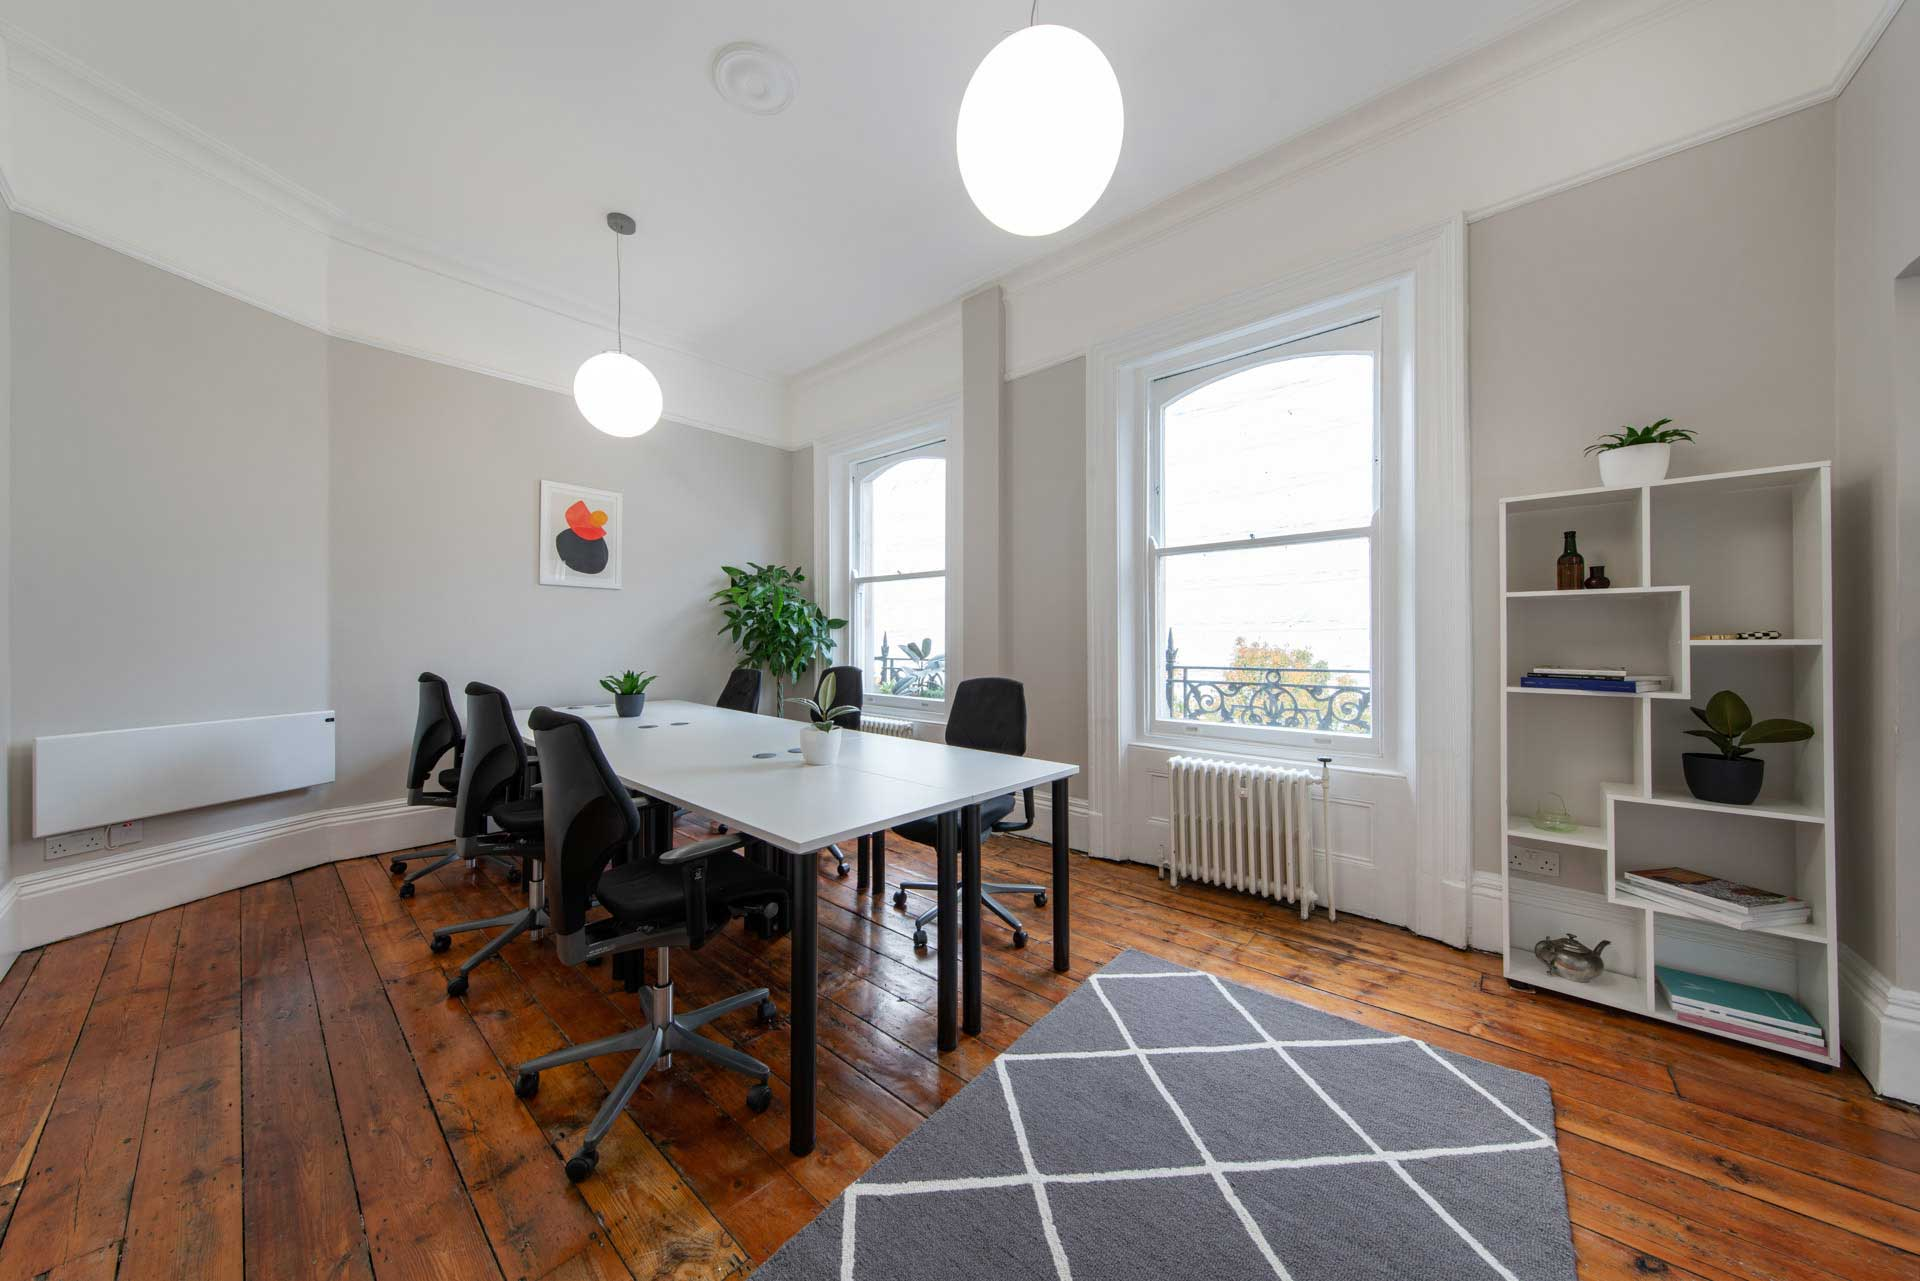 Why are so many companies looking to rent office space in Mayfair?